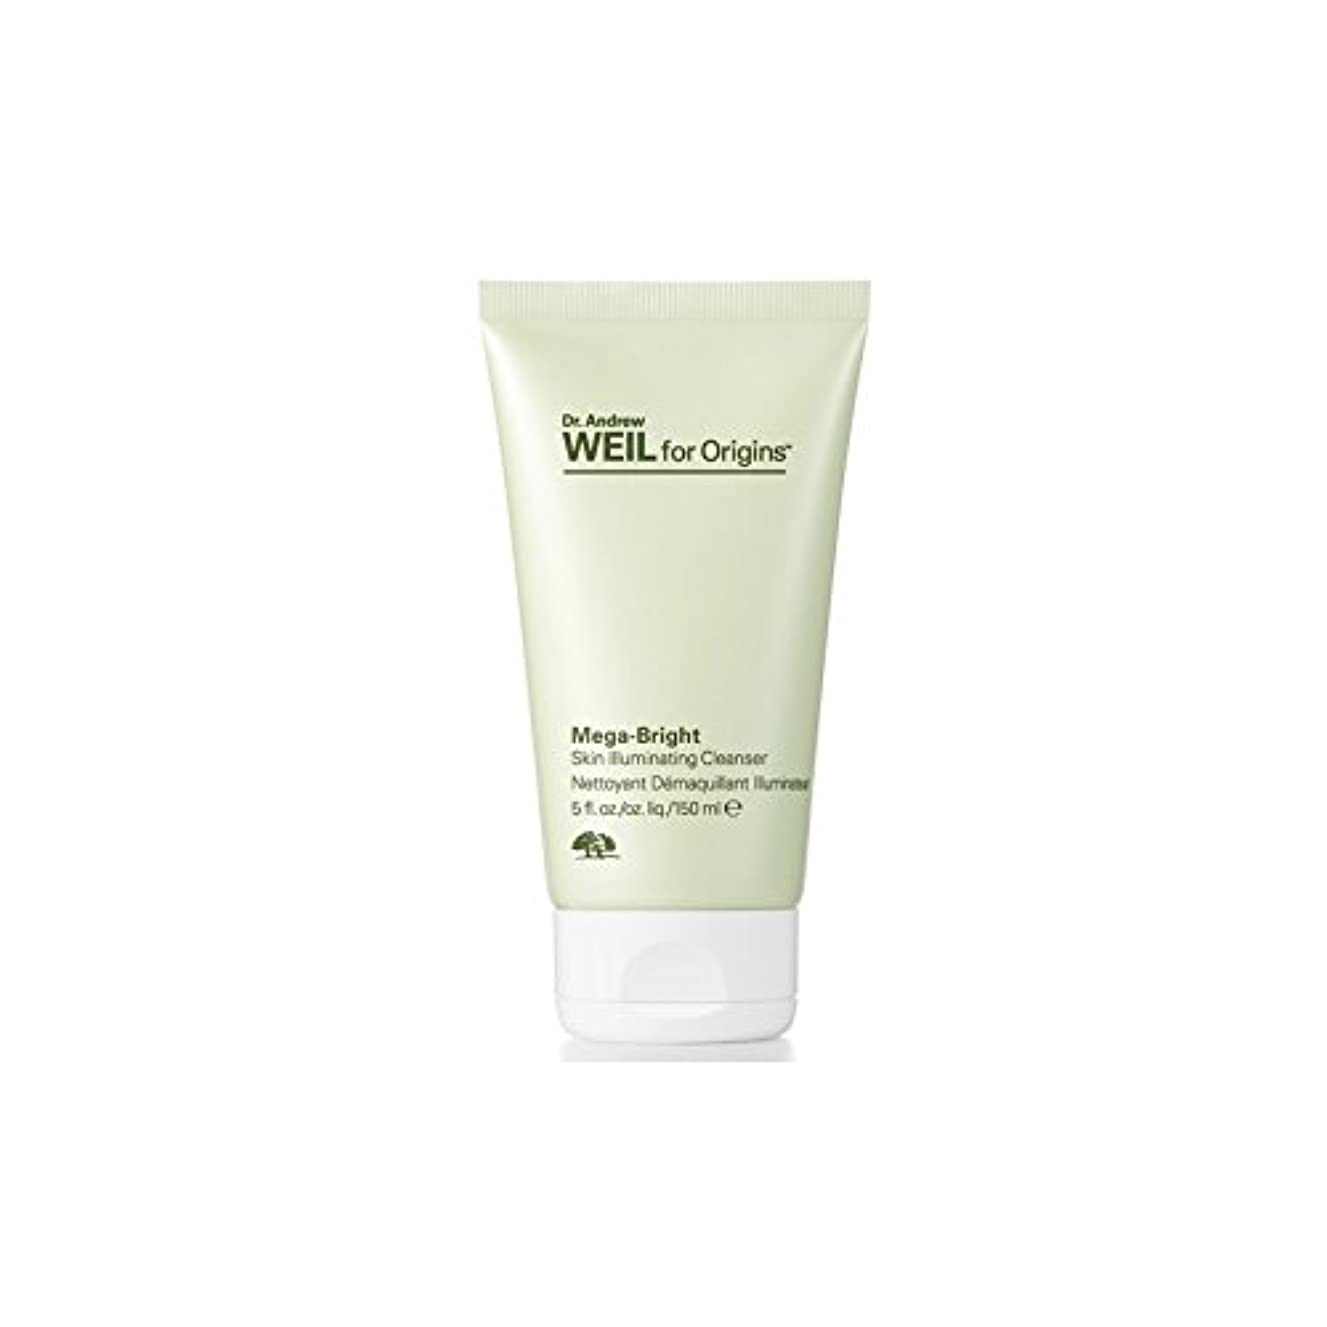 化学者複雑でない厄介なOrigins Dr. Andrew Weil For Origins? Mega-Bright Skin Illuminating Cleanser 150ml (Pack of 6) - 起源アンドルー?ワイルクレンザー...